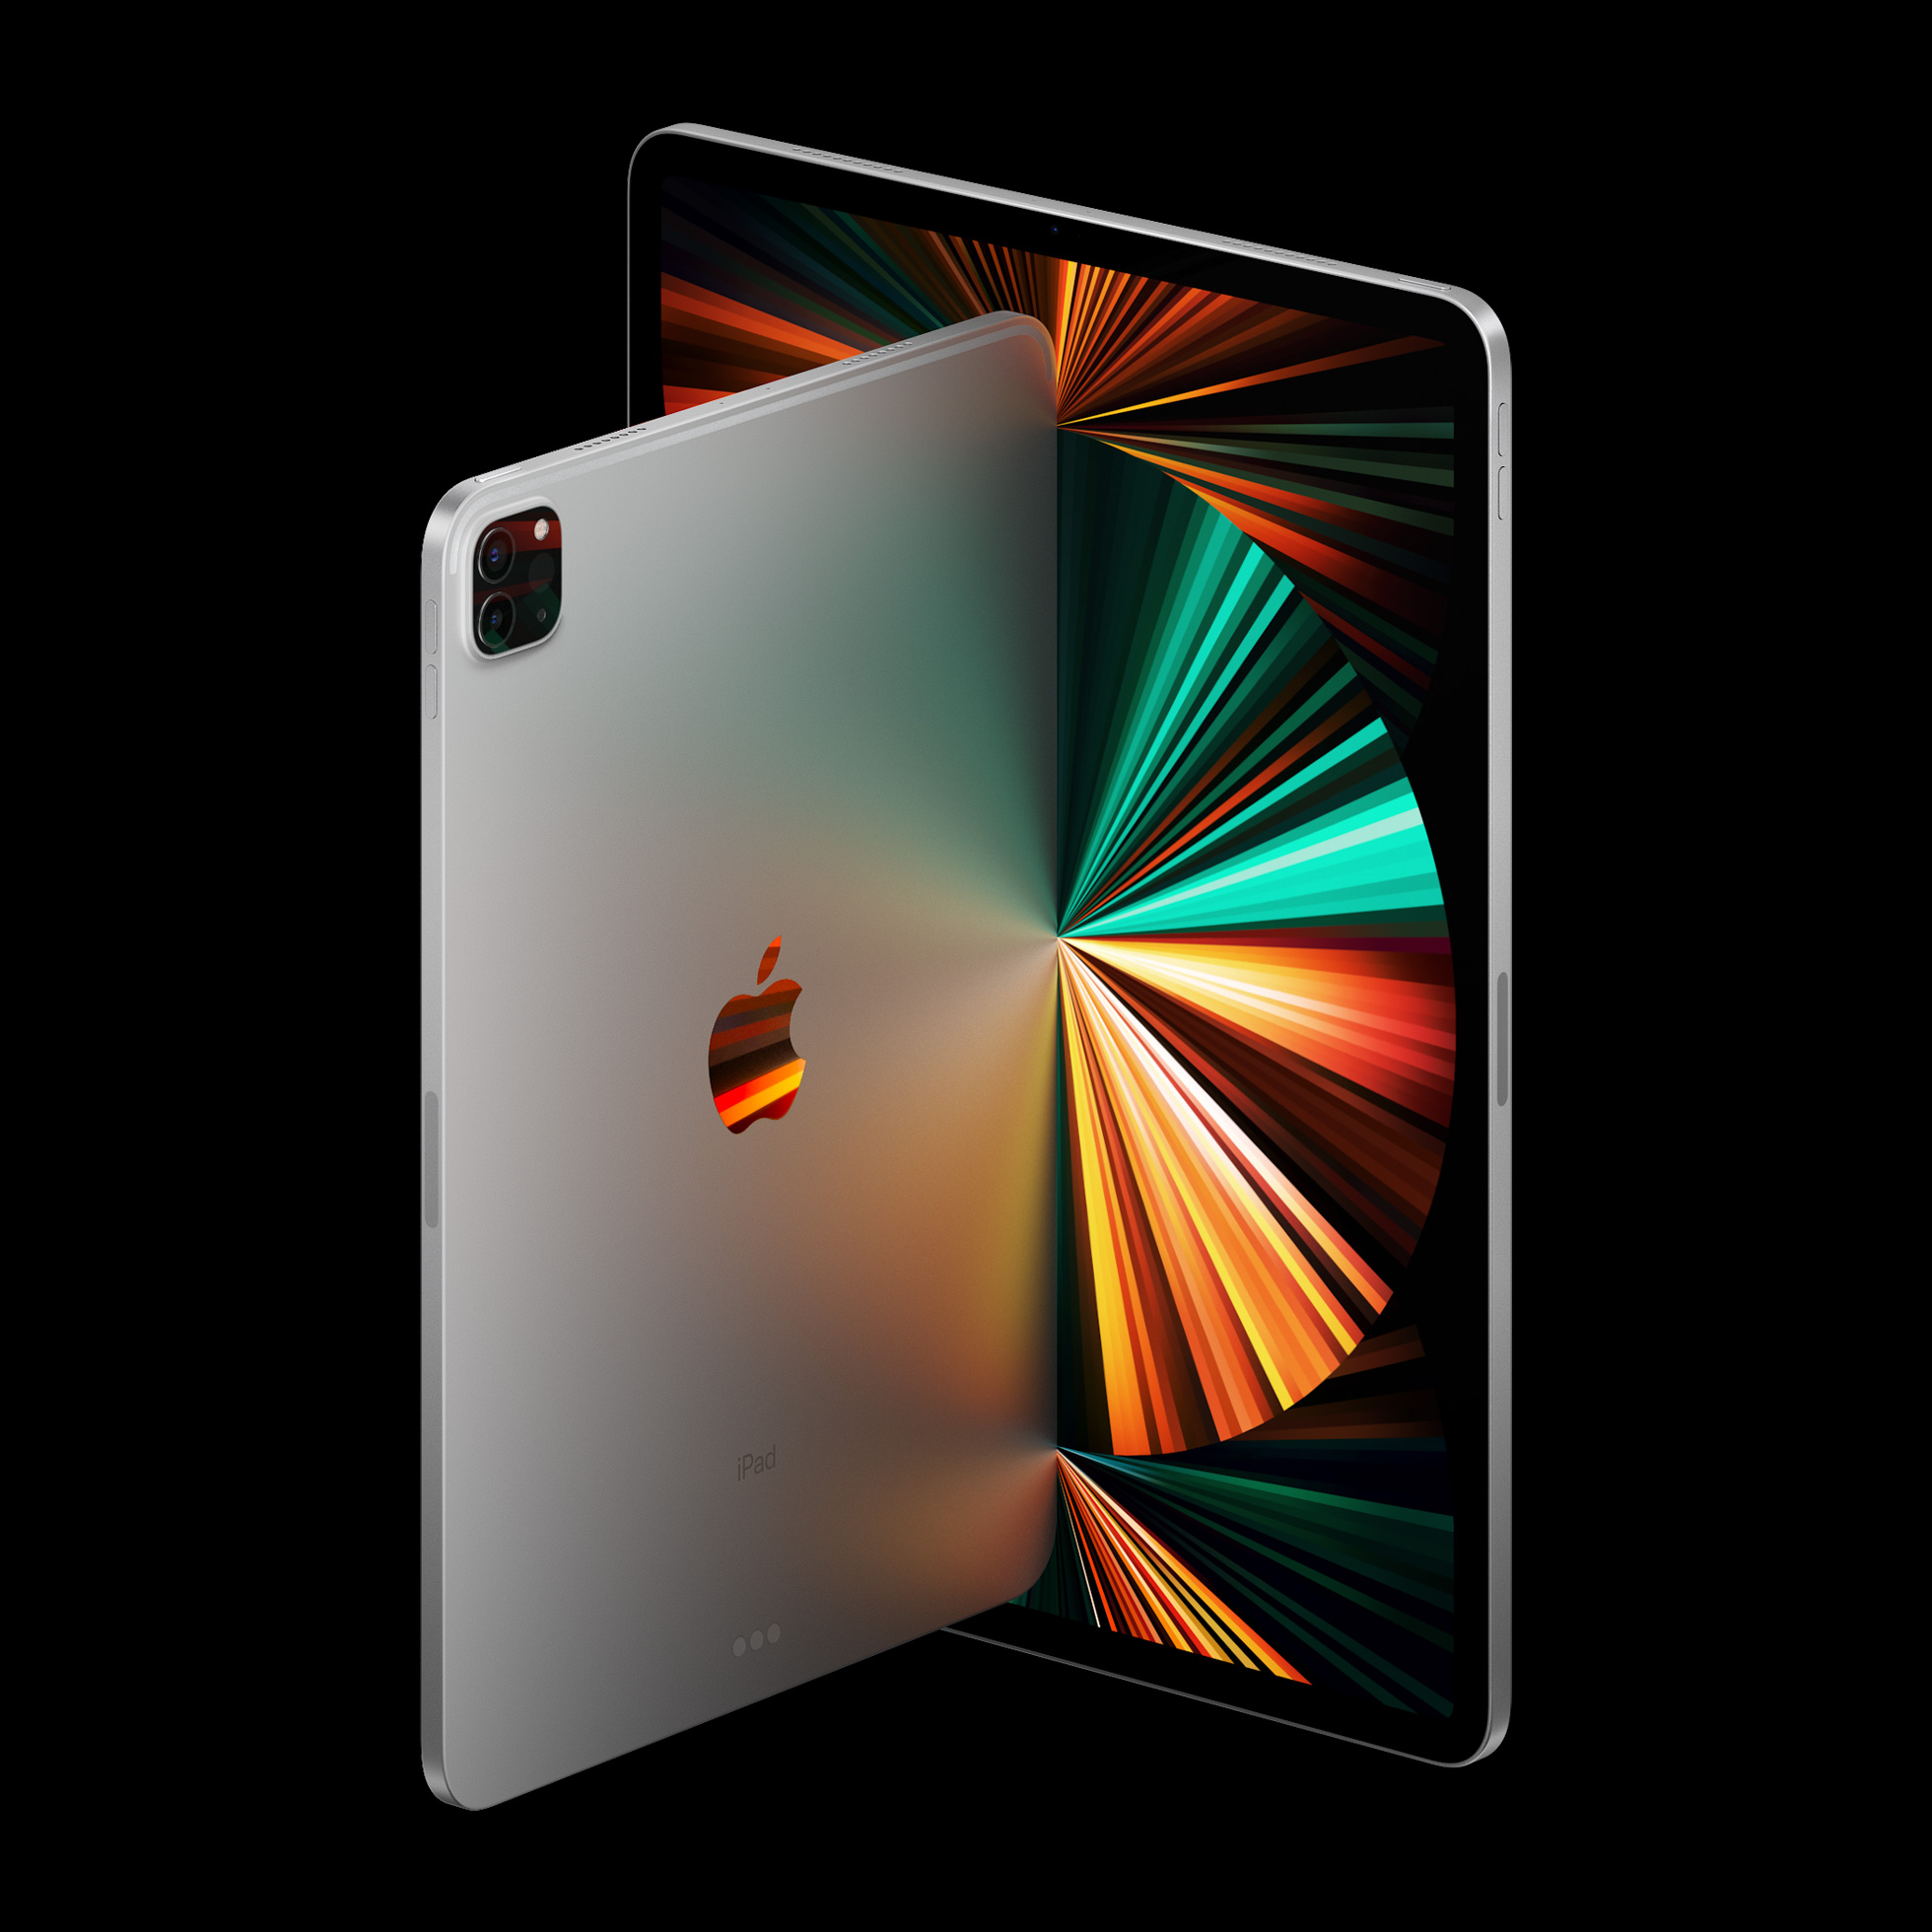 iPad Pro 12.9inches powered by the M1 chip.